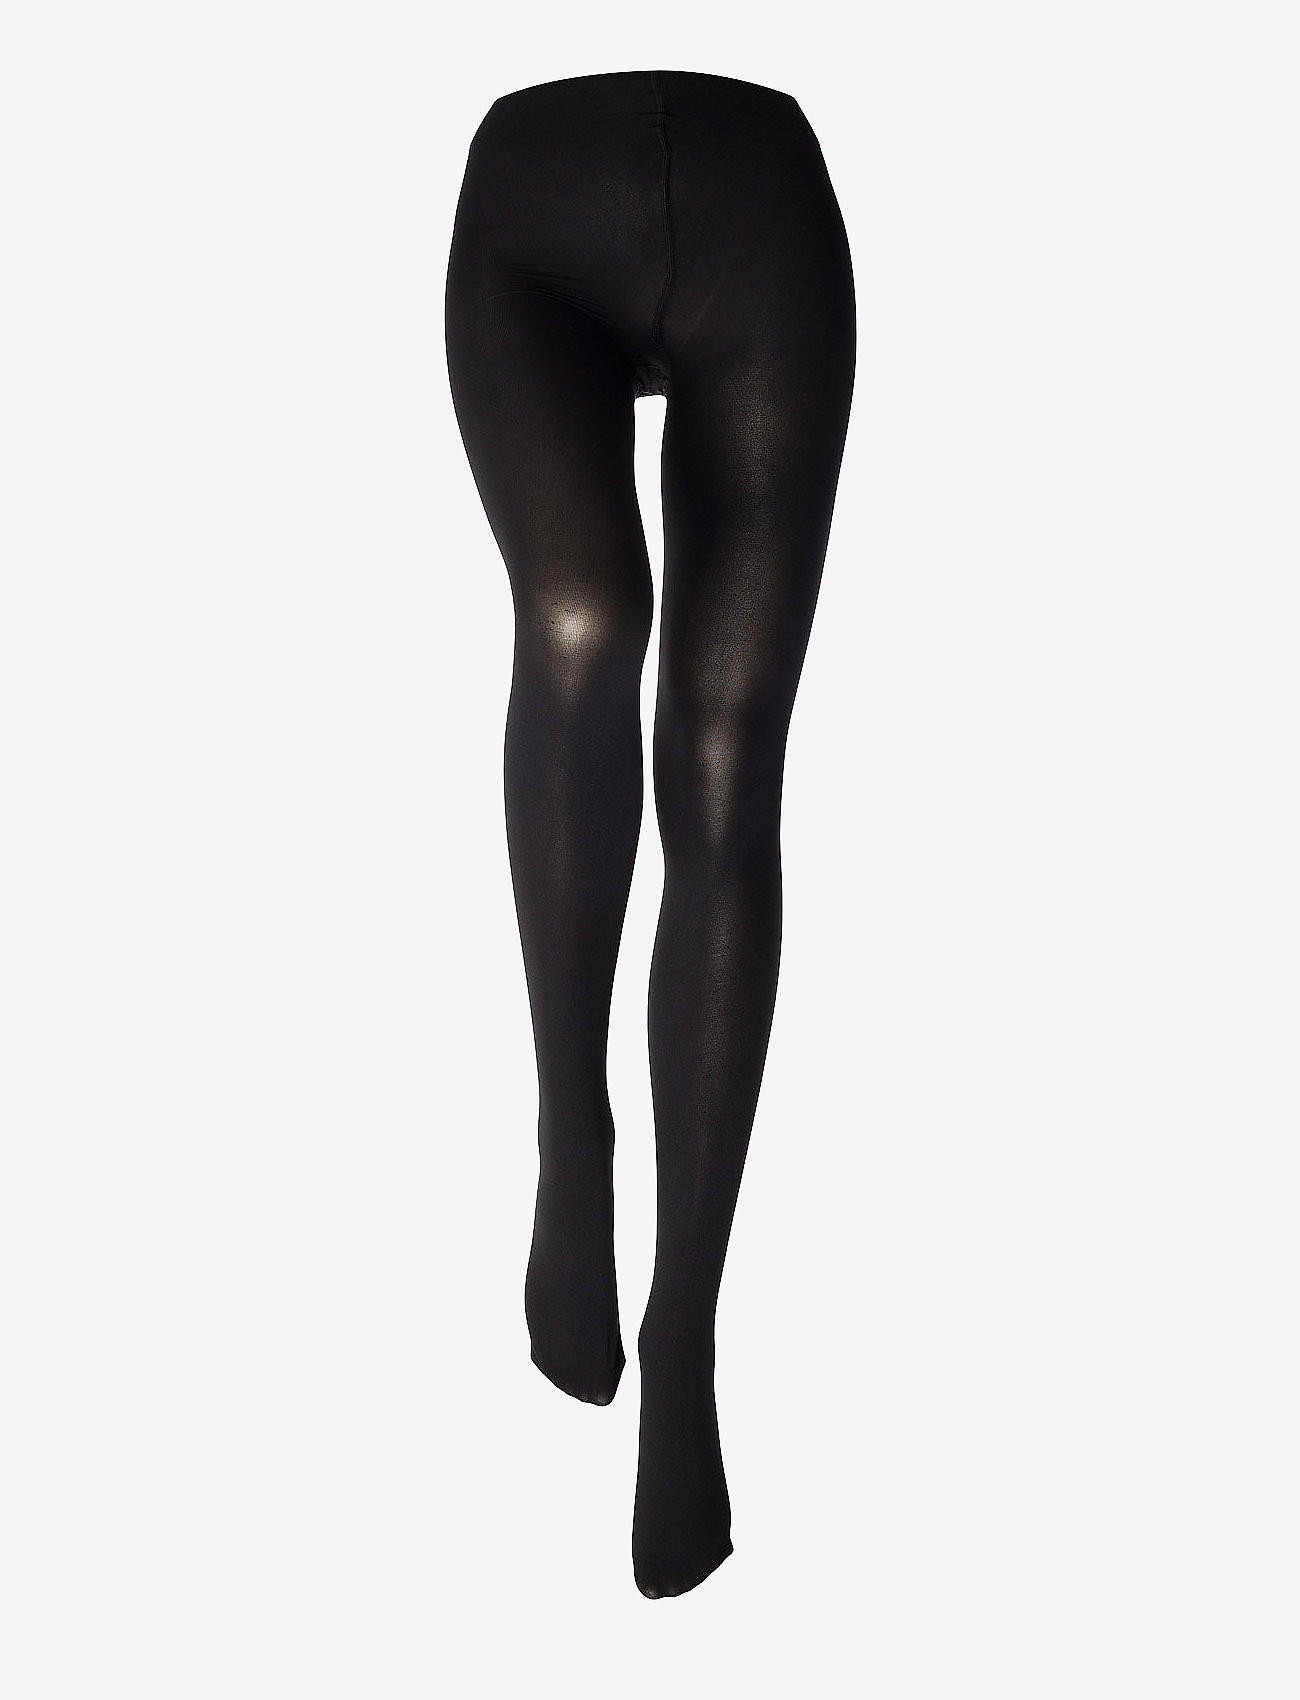 Vogue - Ladies pantyhose den, Opaque 3D 80 den - pantyhose - black - 1